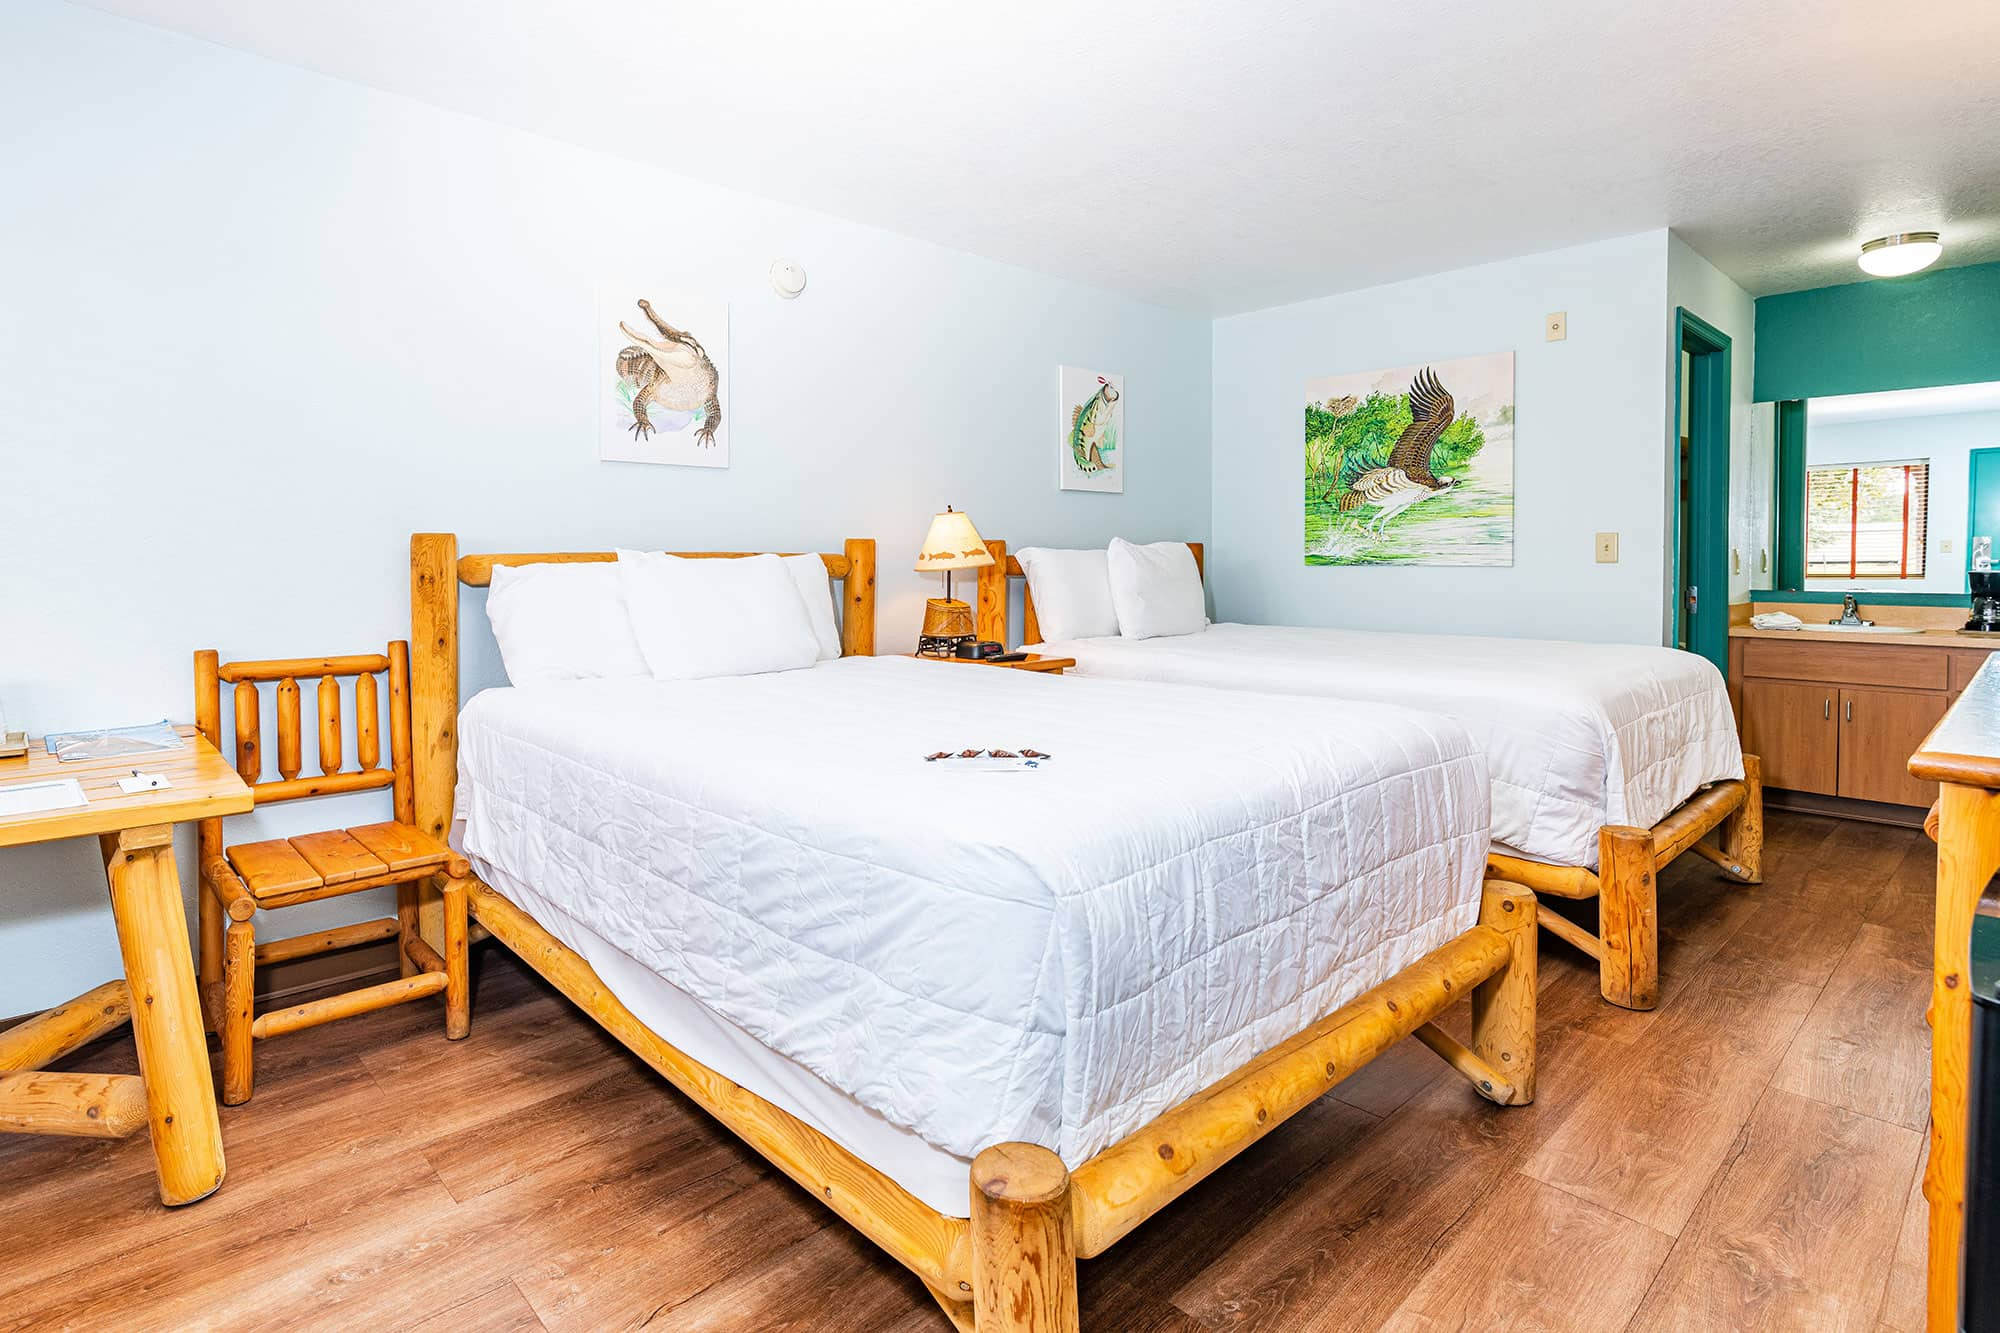 two beds in Double room at Camp Mack a Guy Harvey Lodge in Lake Wales